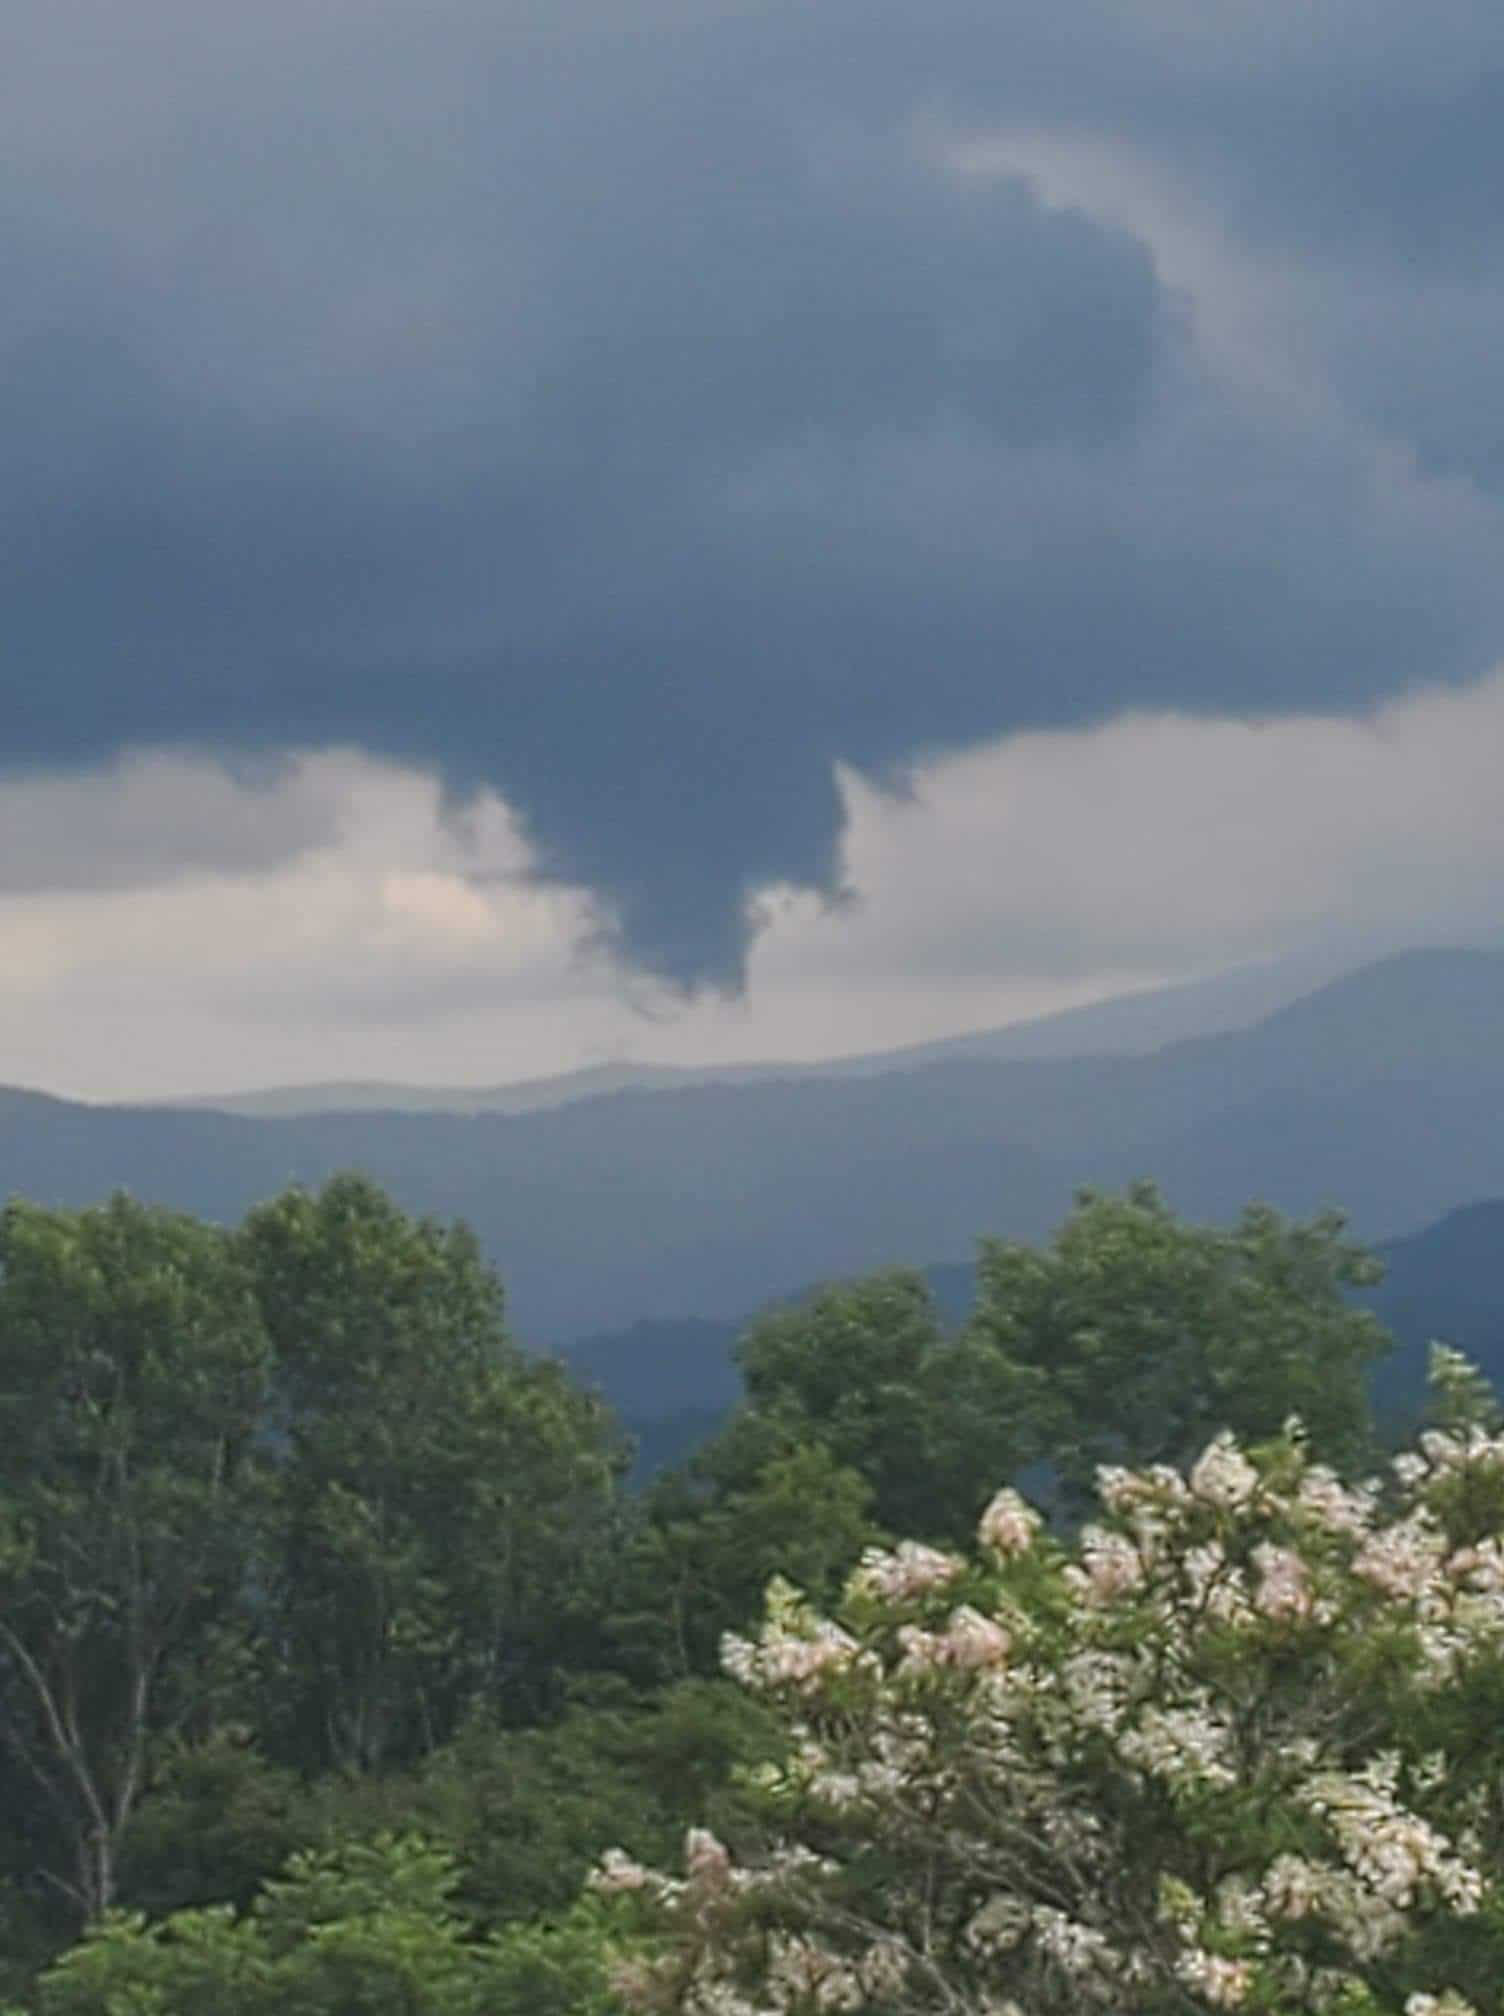 Condensation funnel caught on video on Thursday